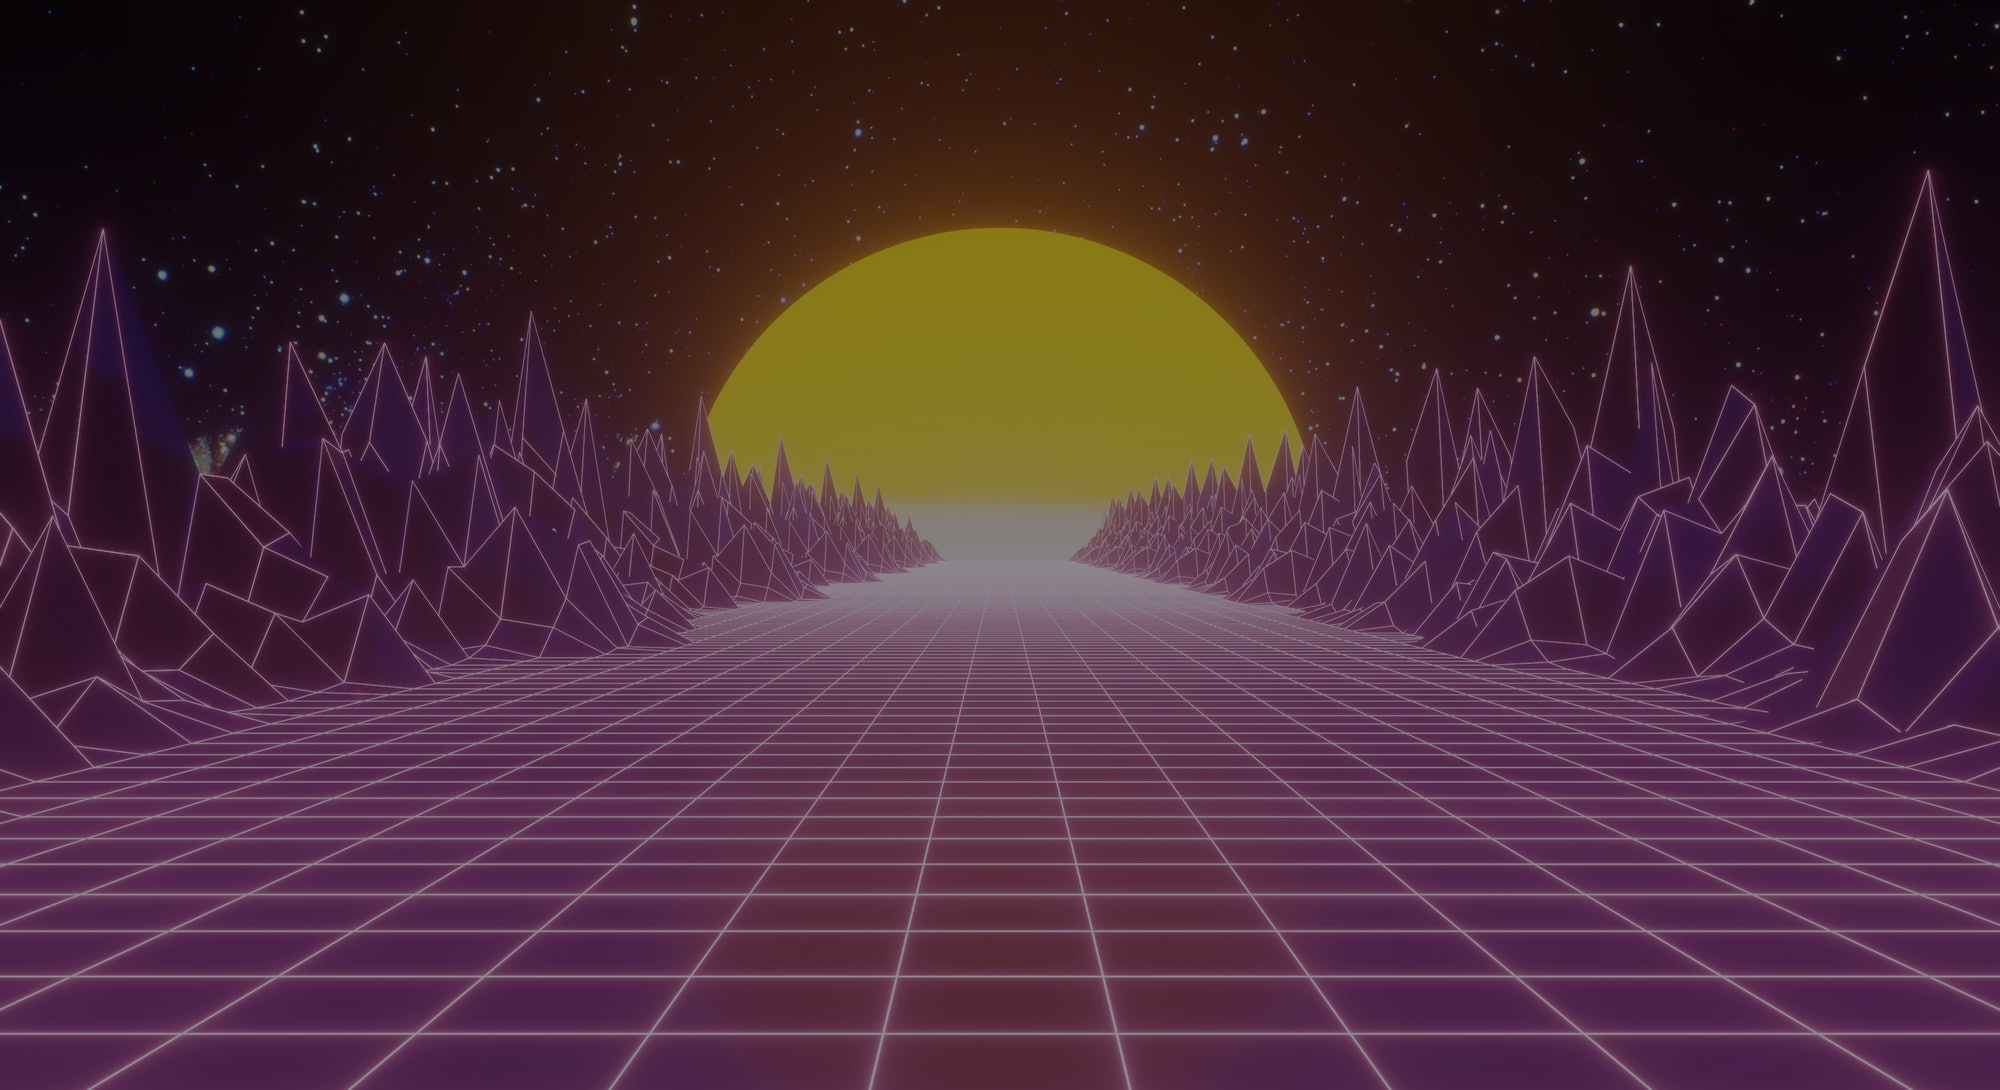 Retro 80s video game tunnel background with mountains and sun 8bit depth of field